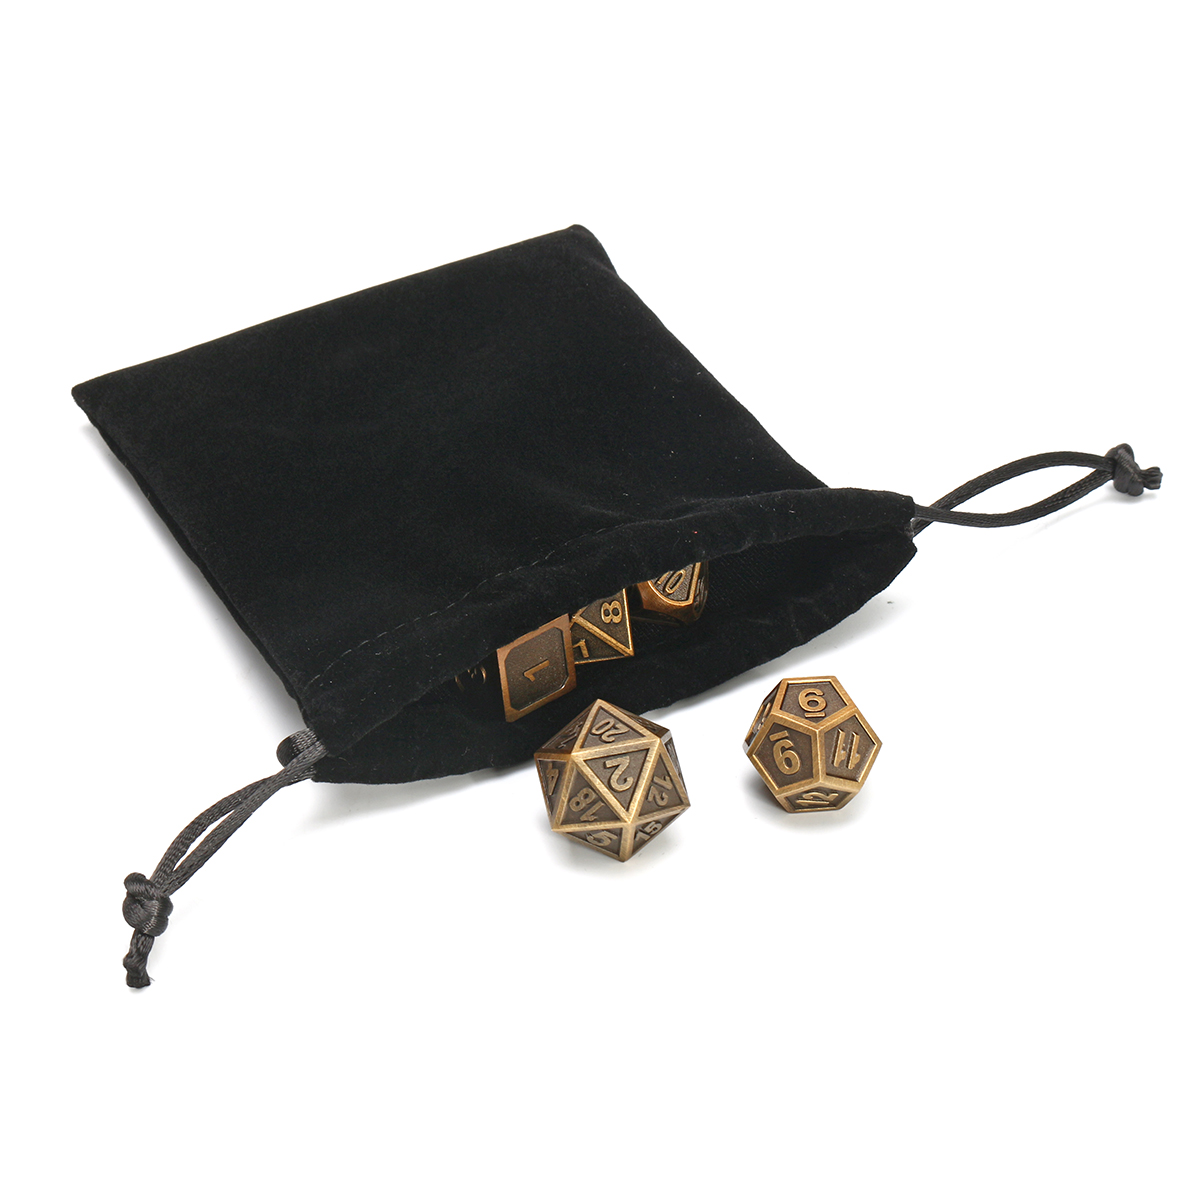 7Pcs Dice Polyhedral Dices Set Zinc Alloy Metal Polyhedral Role Multi-sided D4-D20 with Bags